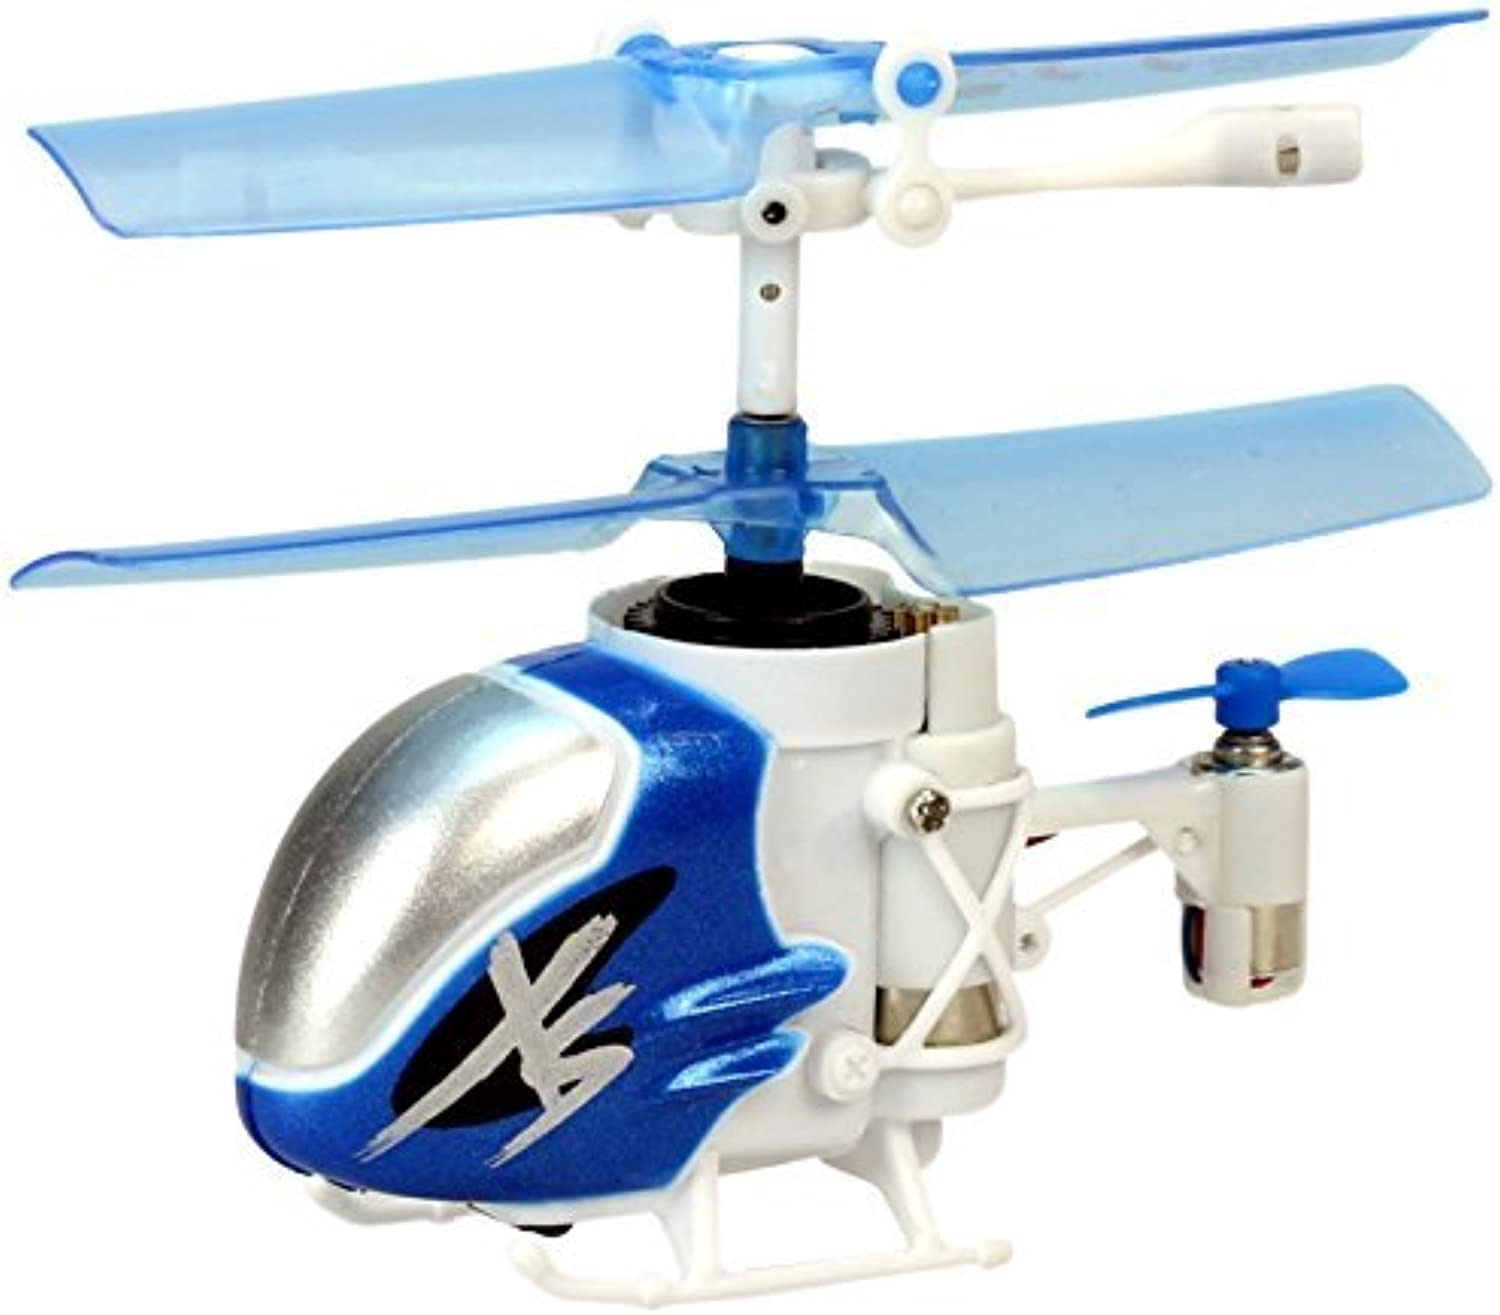 precios bajos platalit Nano Falcon XS XS XS The Smallest 3-Channel I R Remote Control Gyro Helicopter in The World by plataLit  ventas en linea